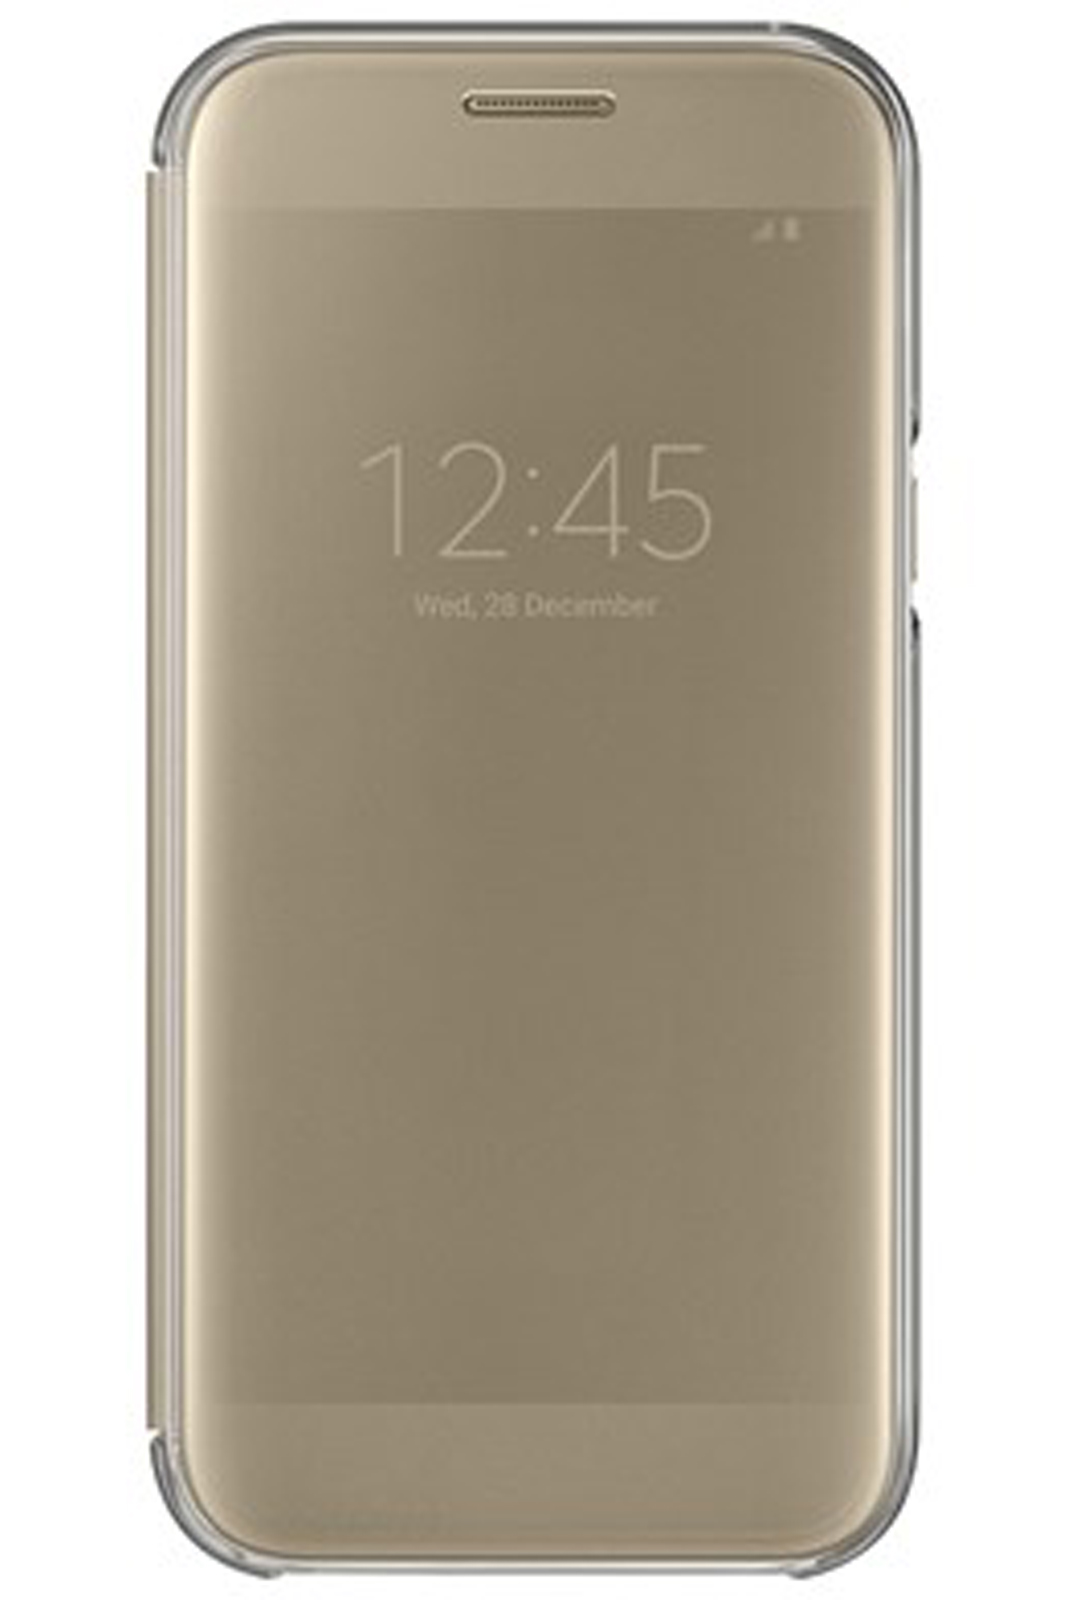 new arrival e8dd5 0cd72 Details about Official Samsung Galaxy A5 2017 SM-A520 Gold Clear View Cover  / Case - EF-ZA520C